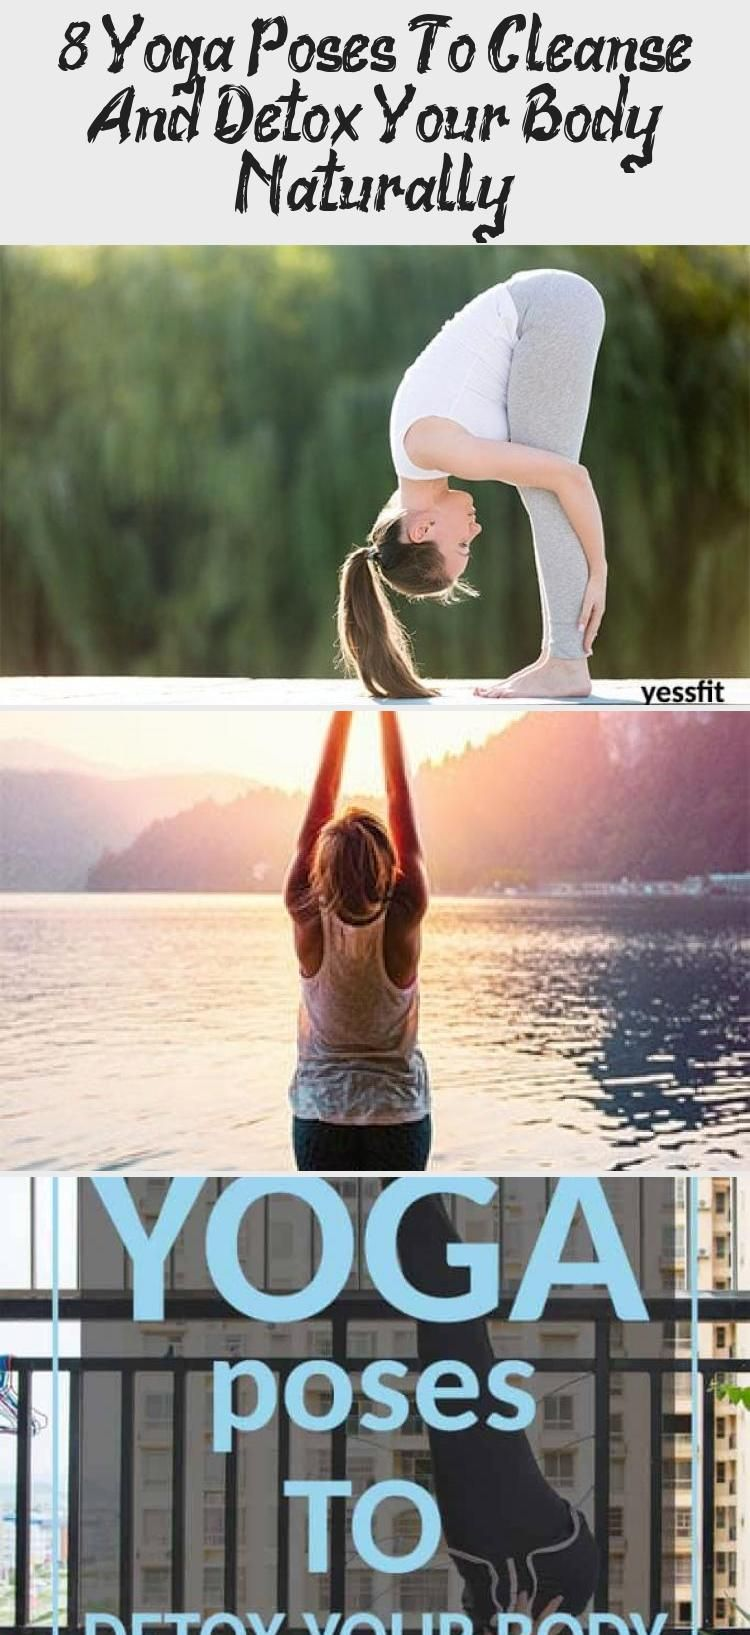 8 Yoga Poses to Cleanse and Detox Your Body Naturally | Lose Weight | weight loss | health | diet |...